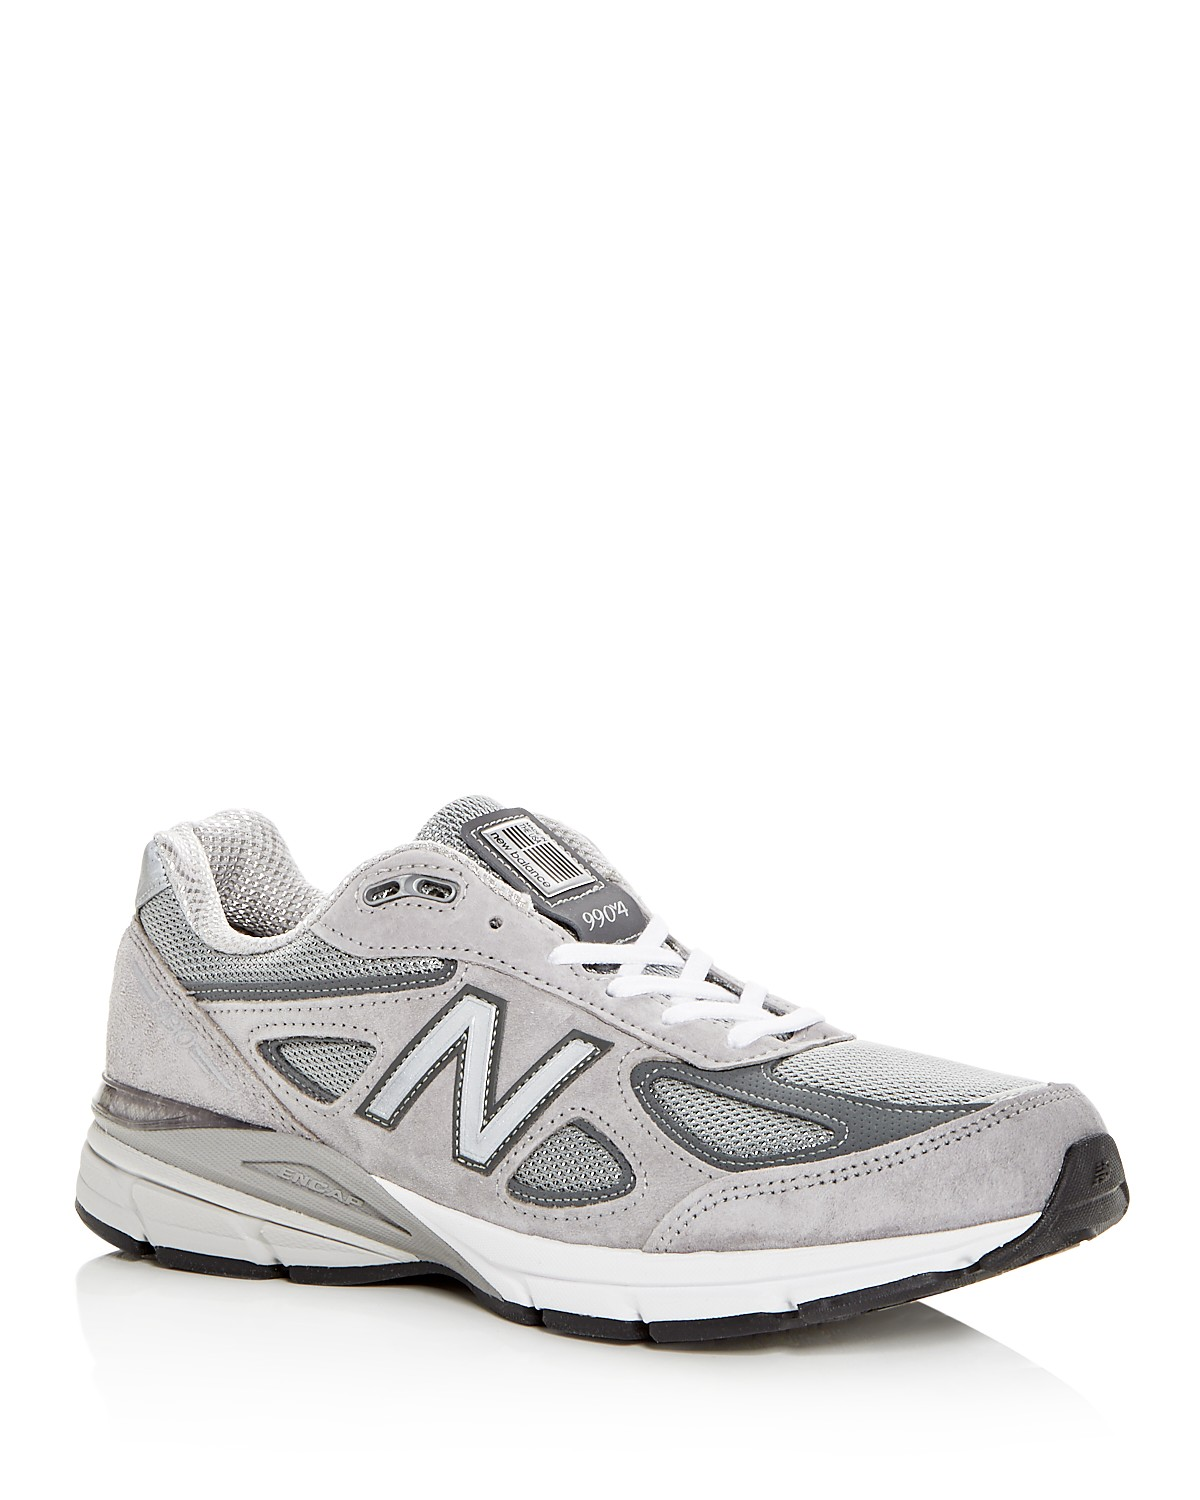 New Balance Men's 990v4 Lace Up Sneakers L7xUaWD